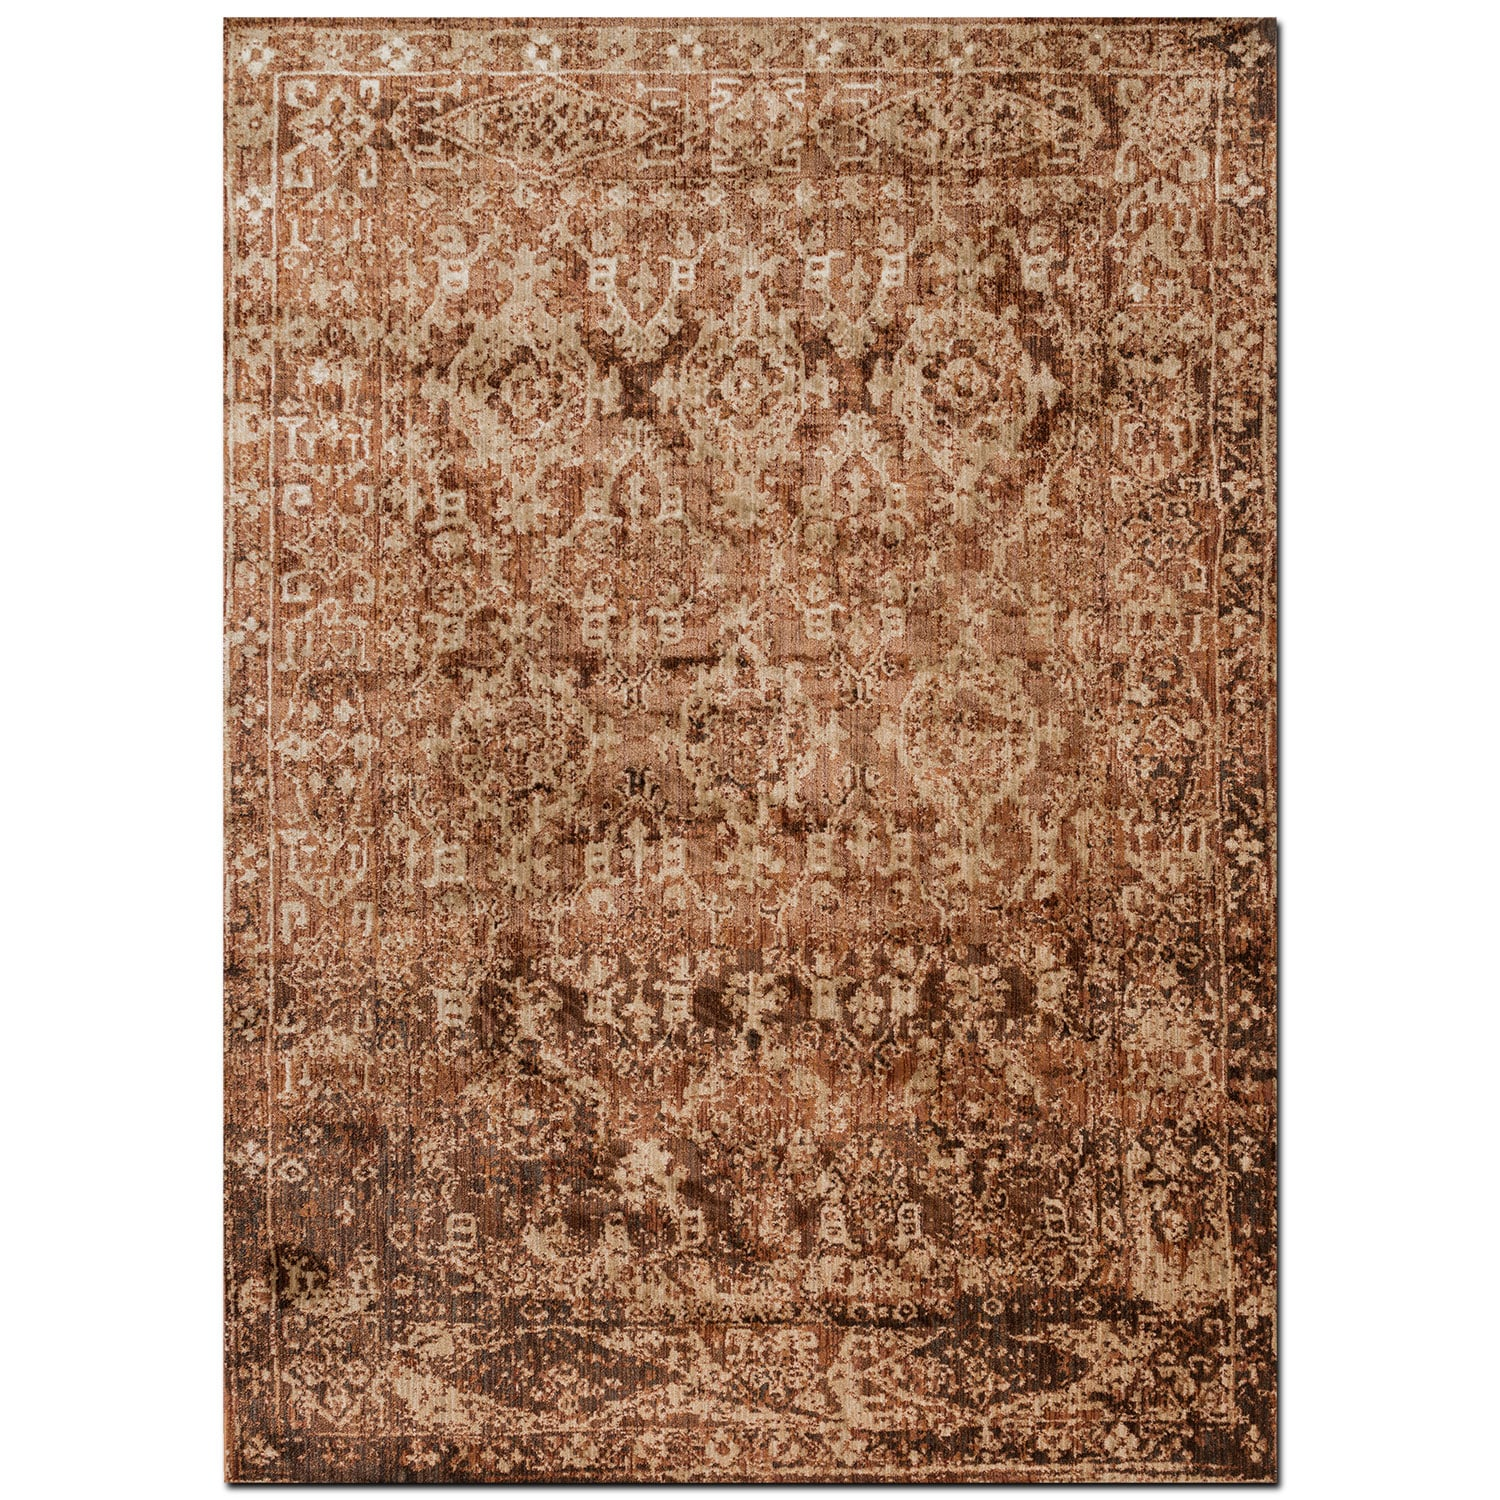 Kivi 5' x 8' Rug - Sand and Copper